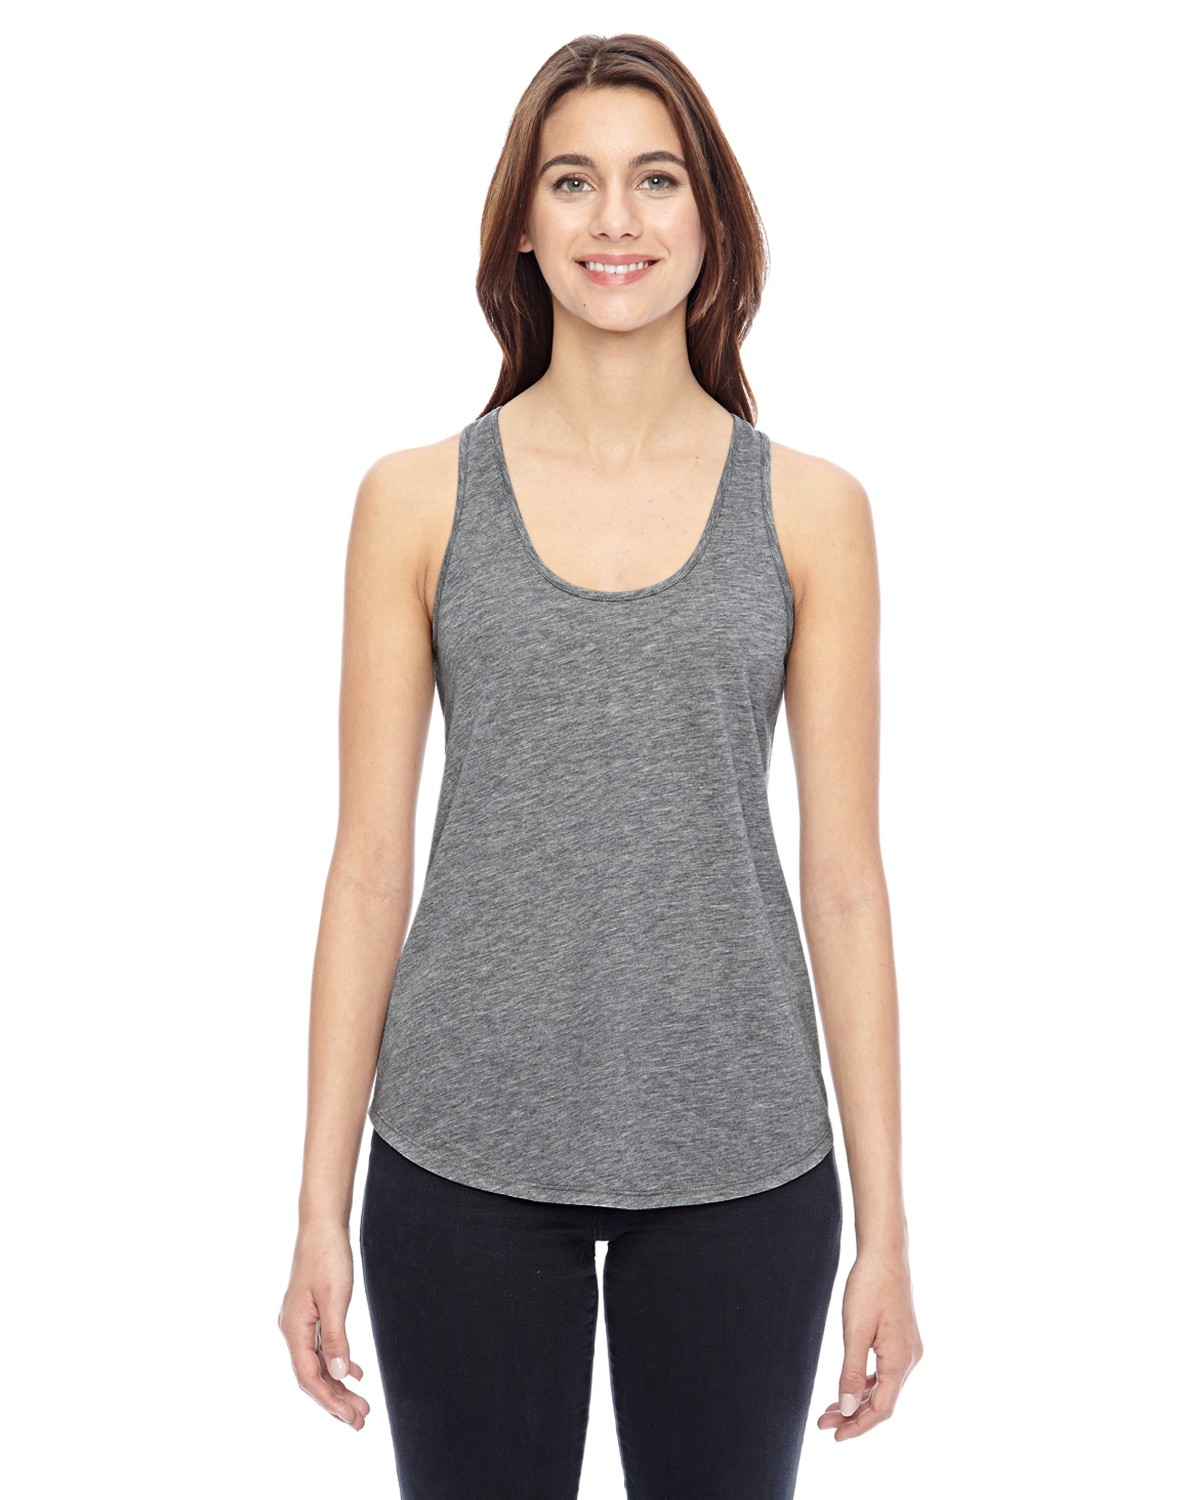 04031C1 Alternative HEATHER GREY